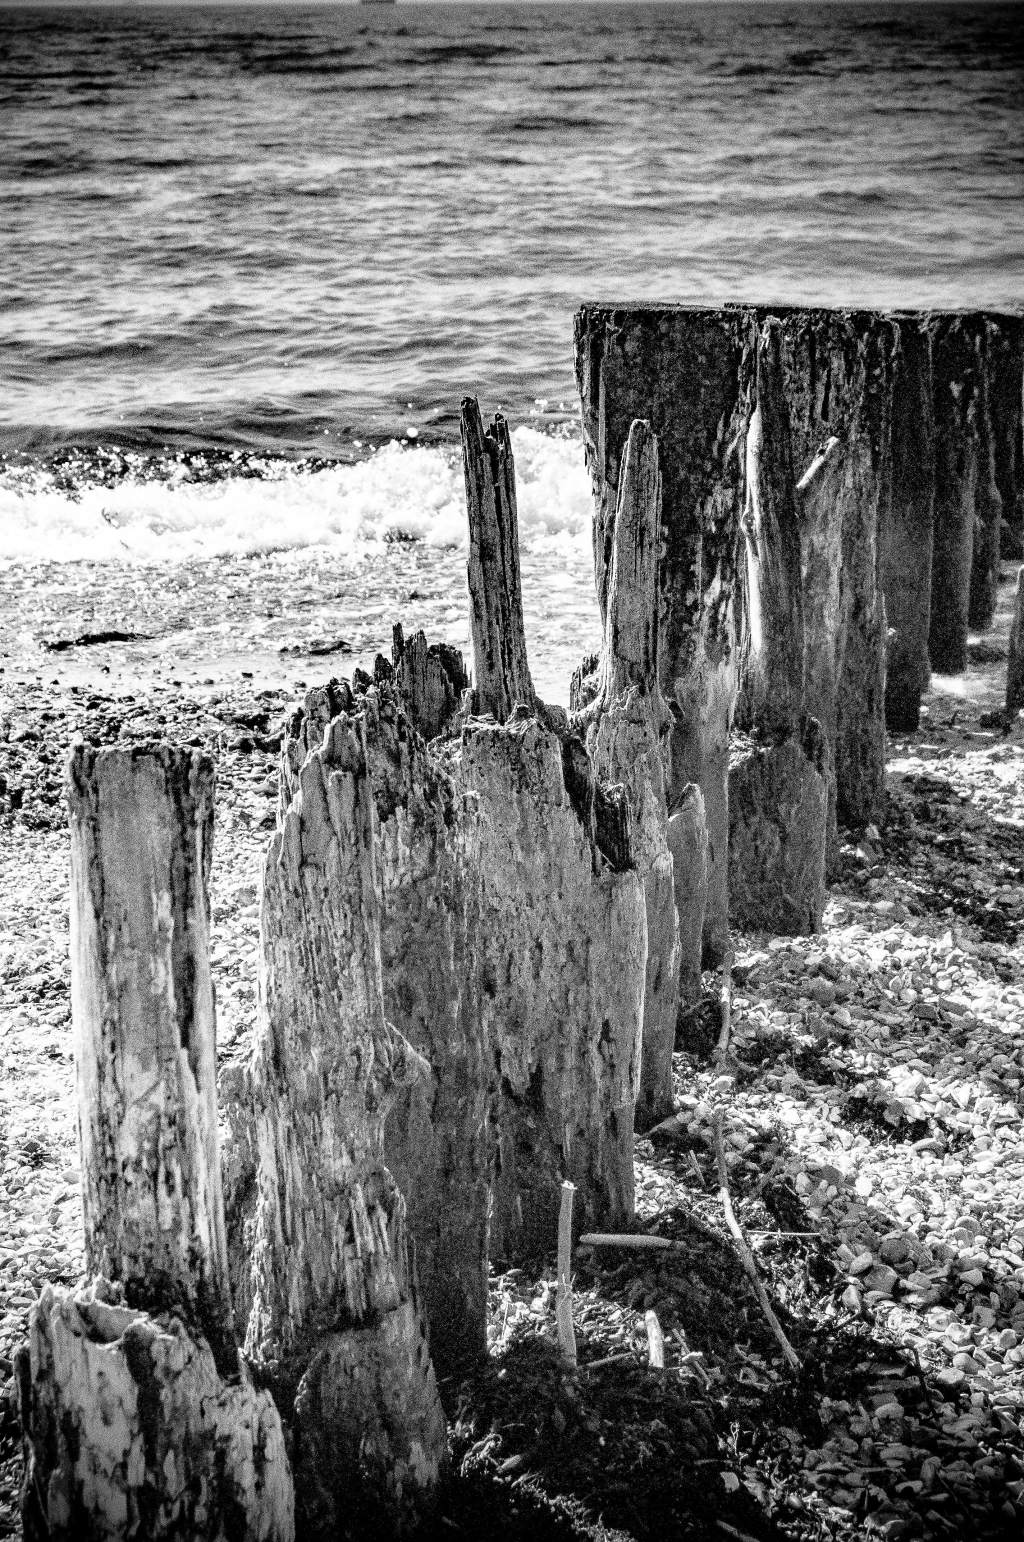 Small wave breakers at Lepe